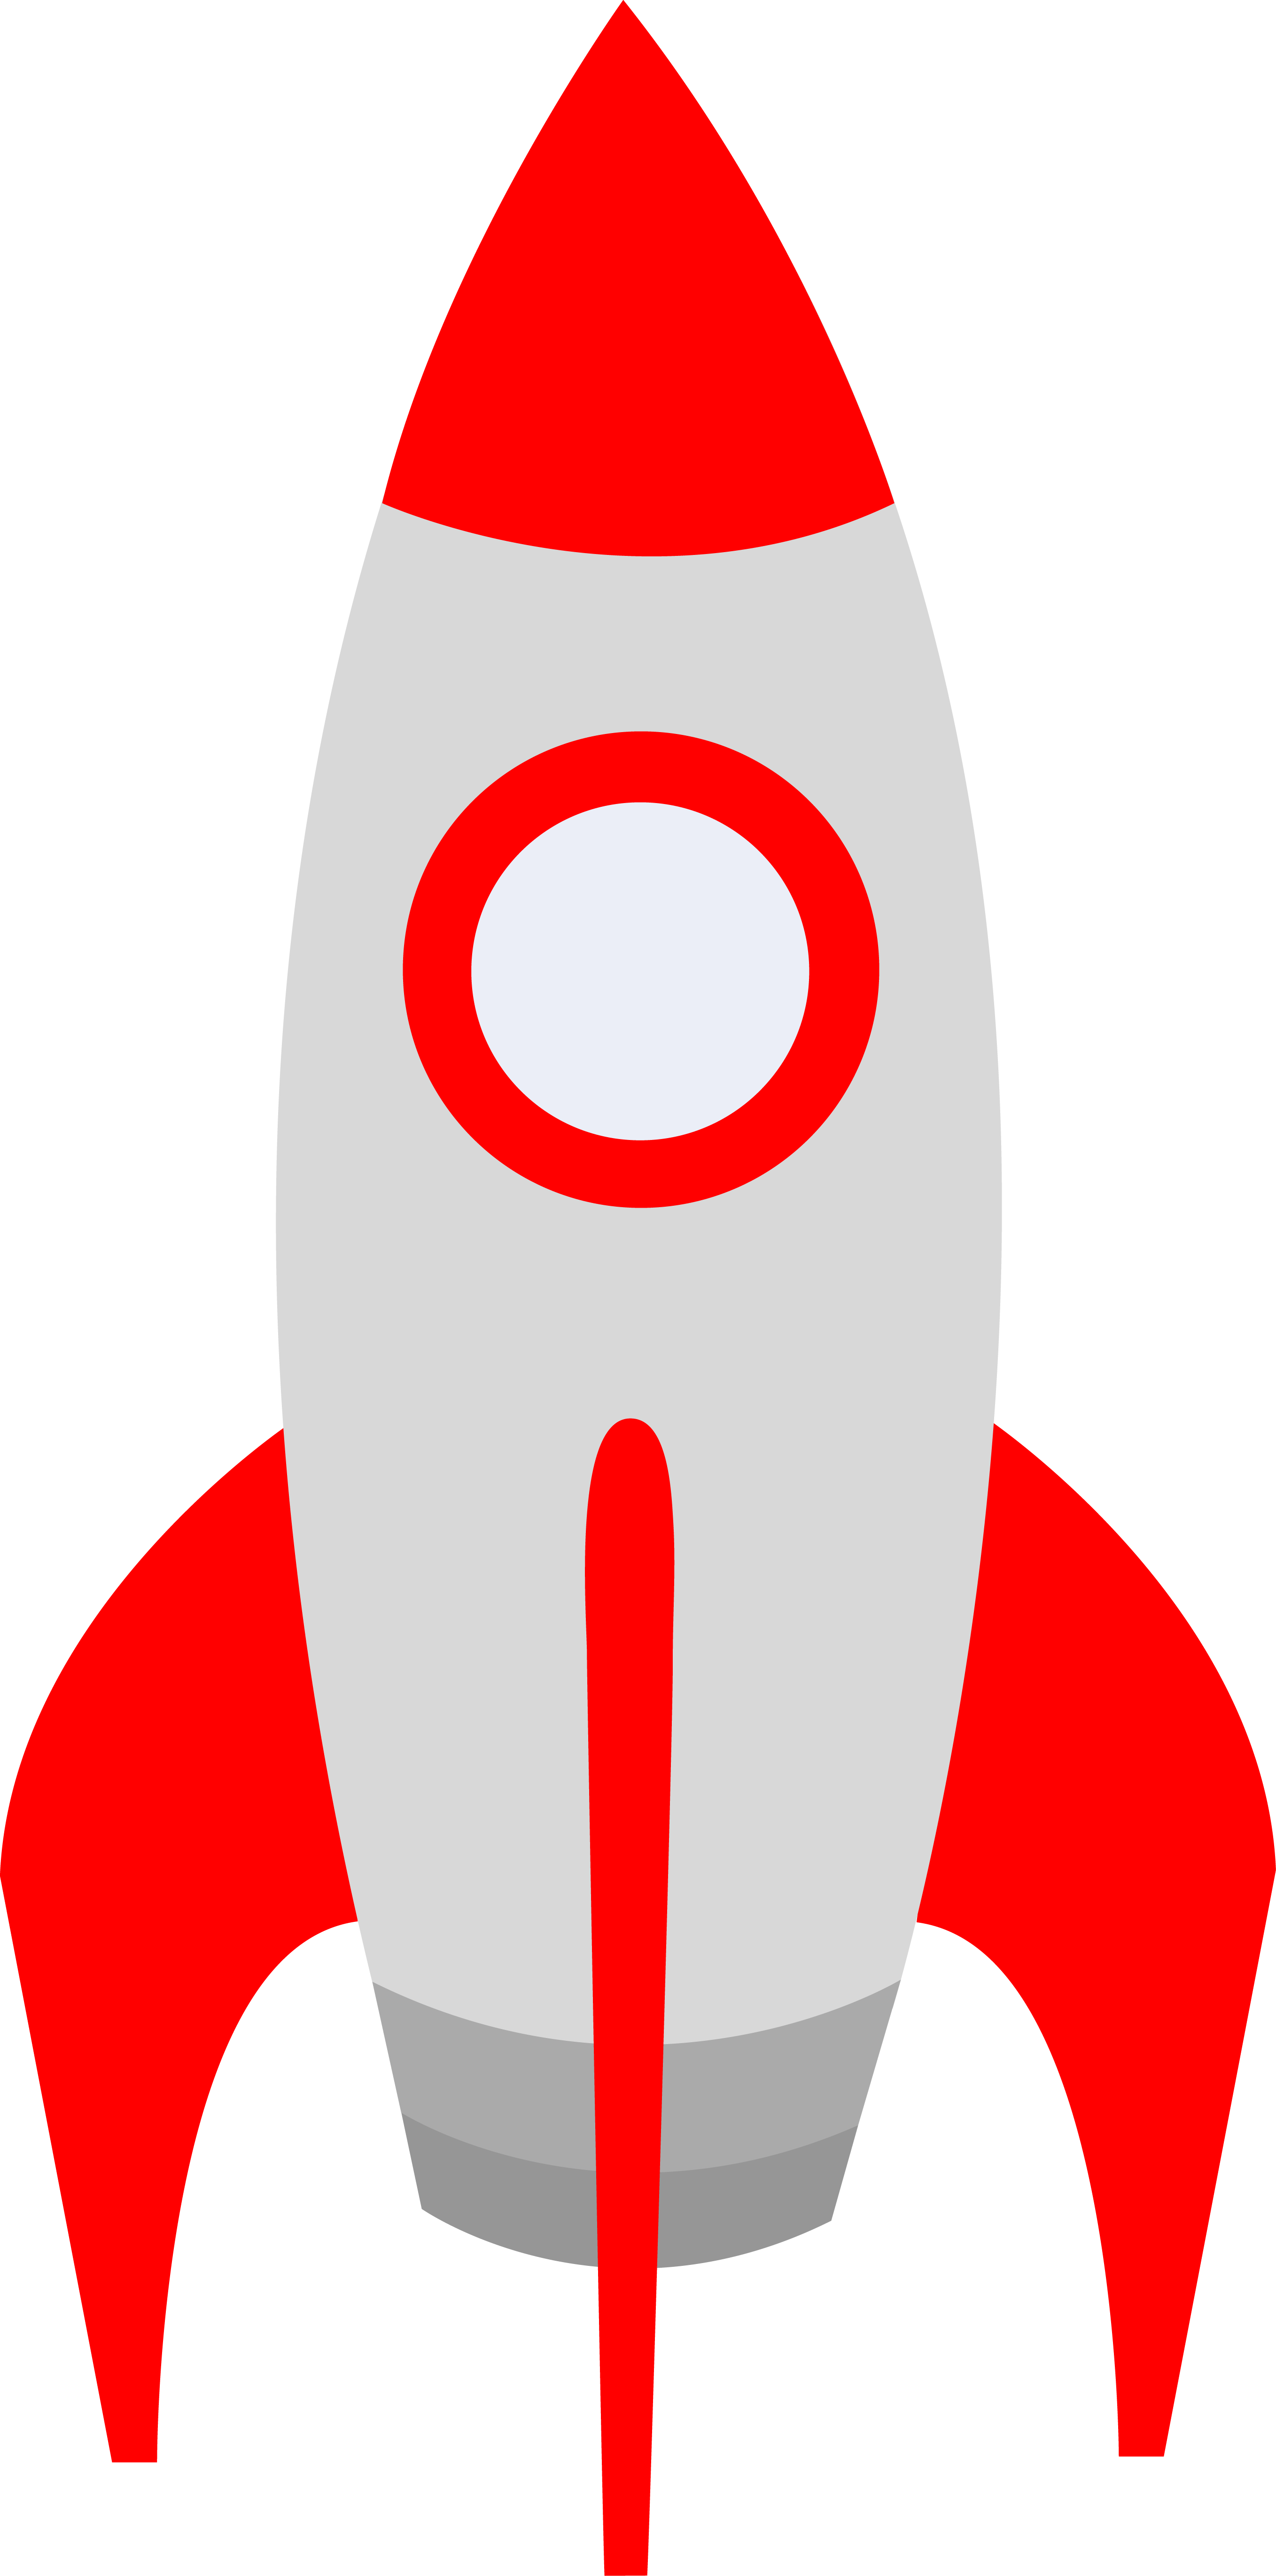 Rocket png. Rockets images free download black and white library